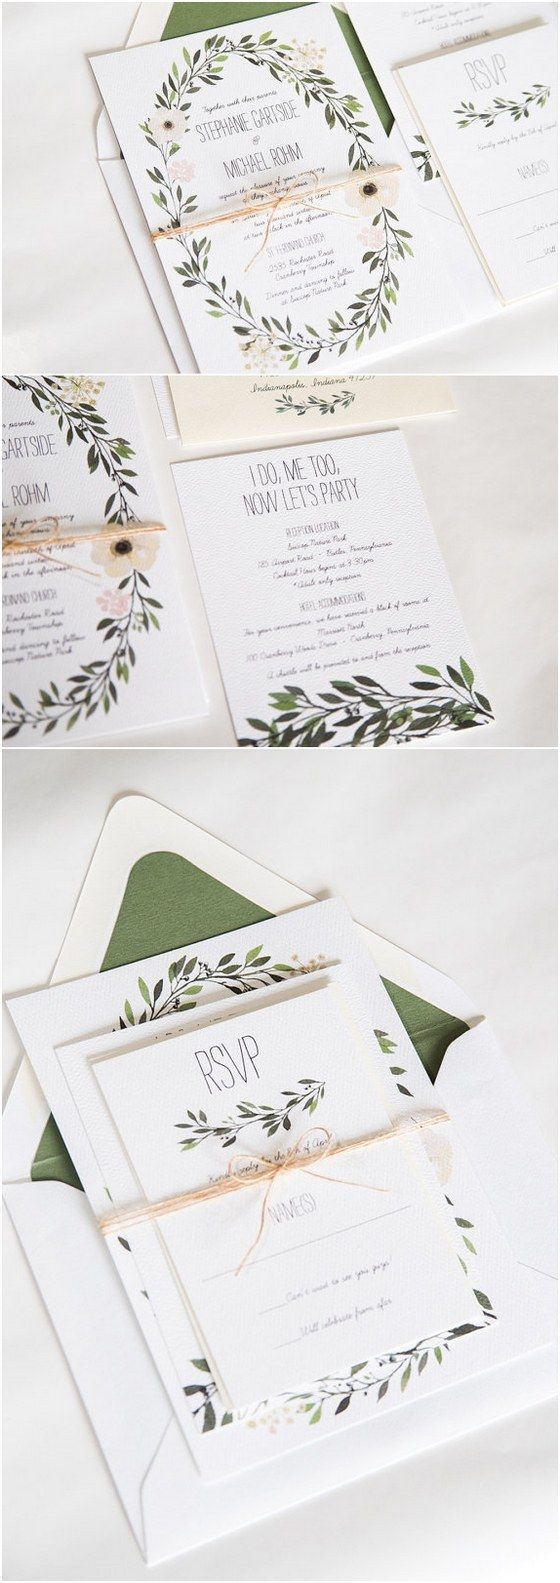 templates for wedding card design%0A    Watercolor Wedding Invitation Ideas You Will Love